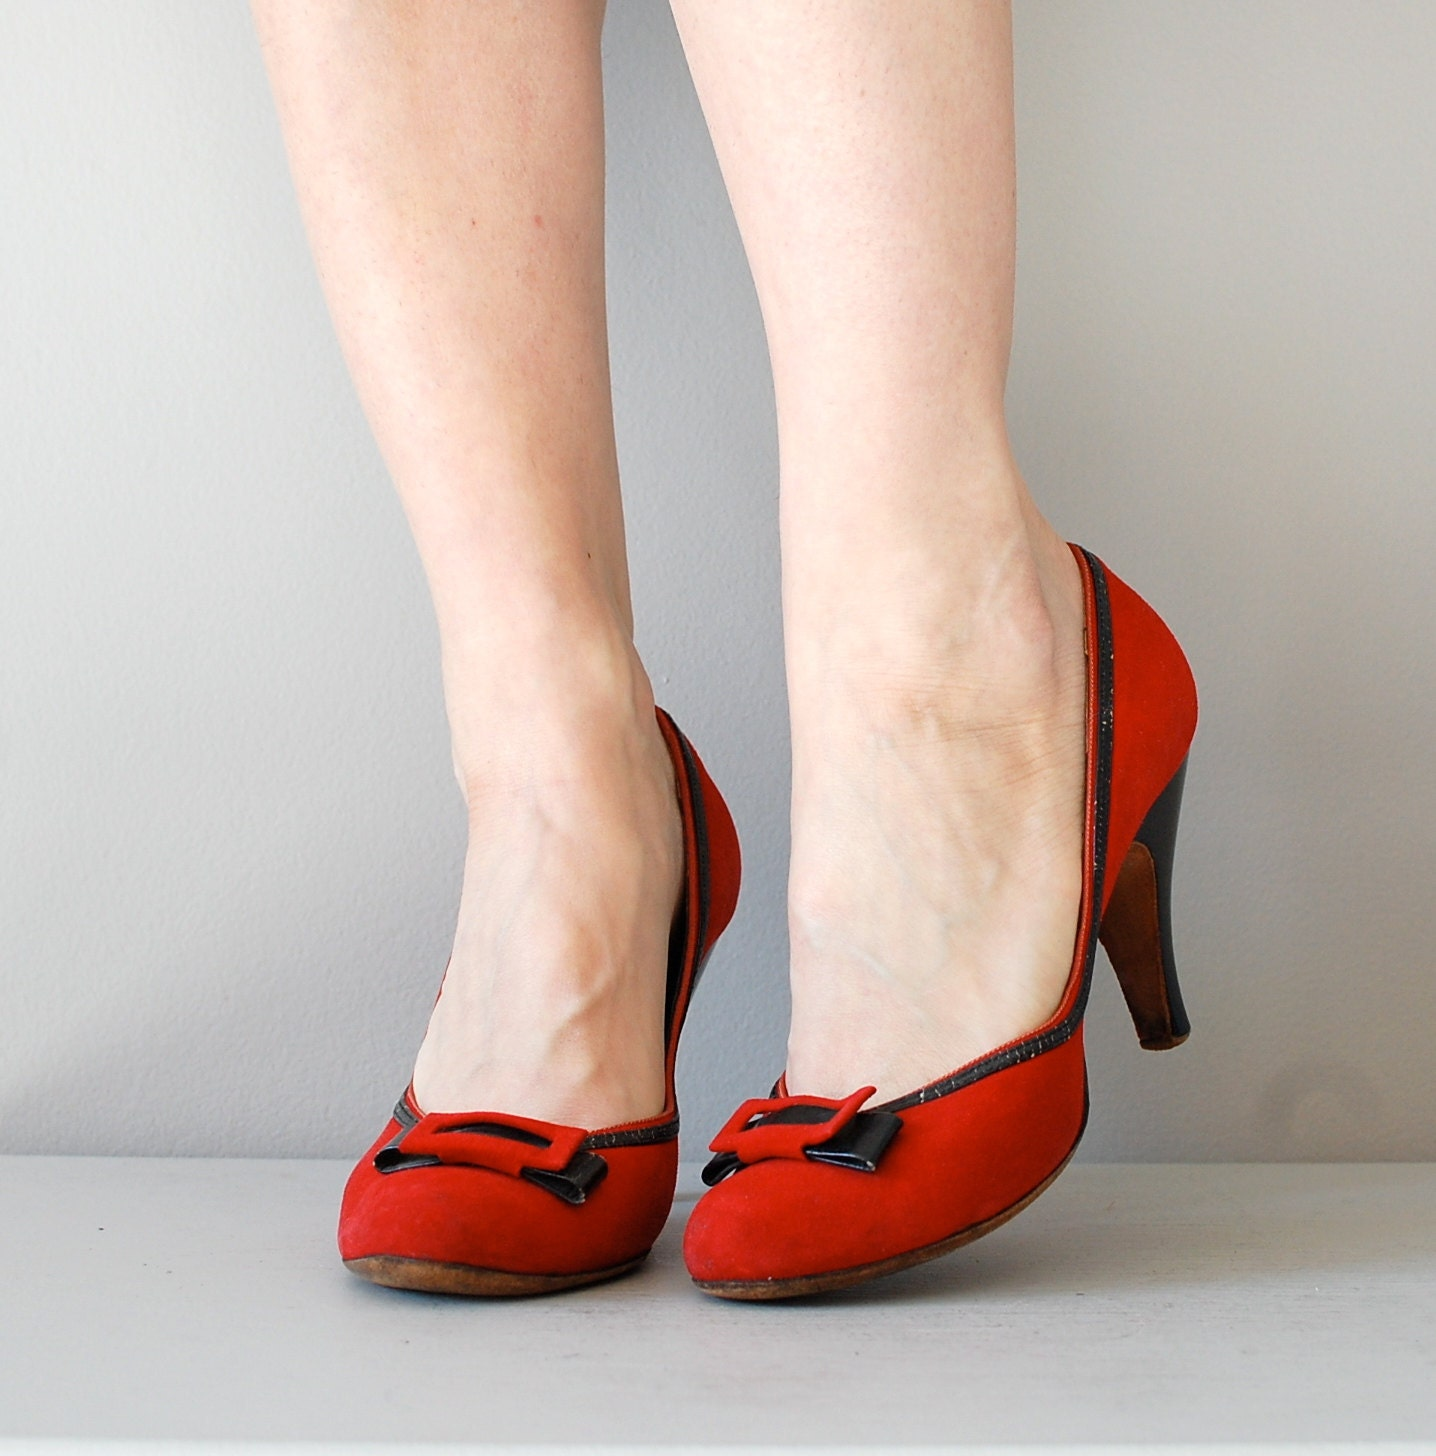 1950s Girl Shoes Il Fullxfull